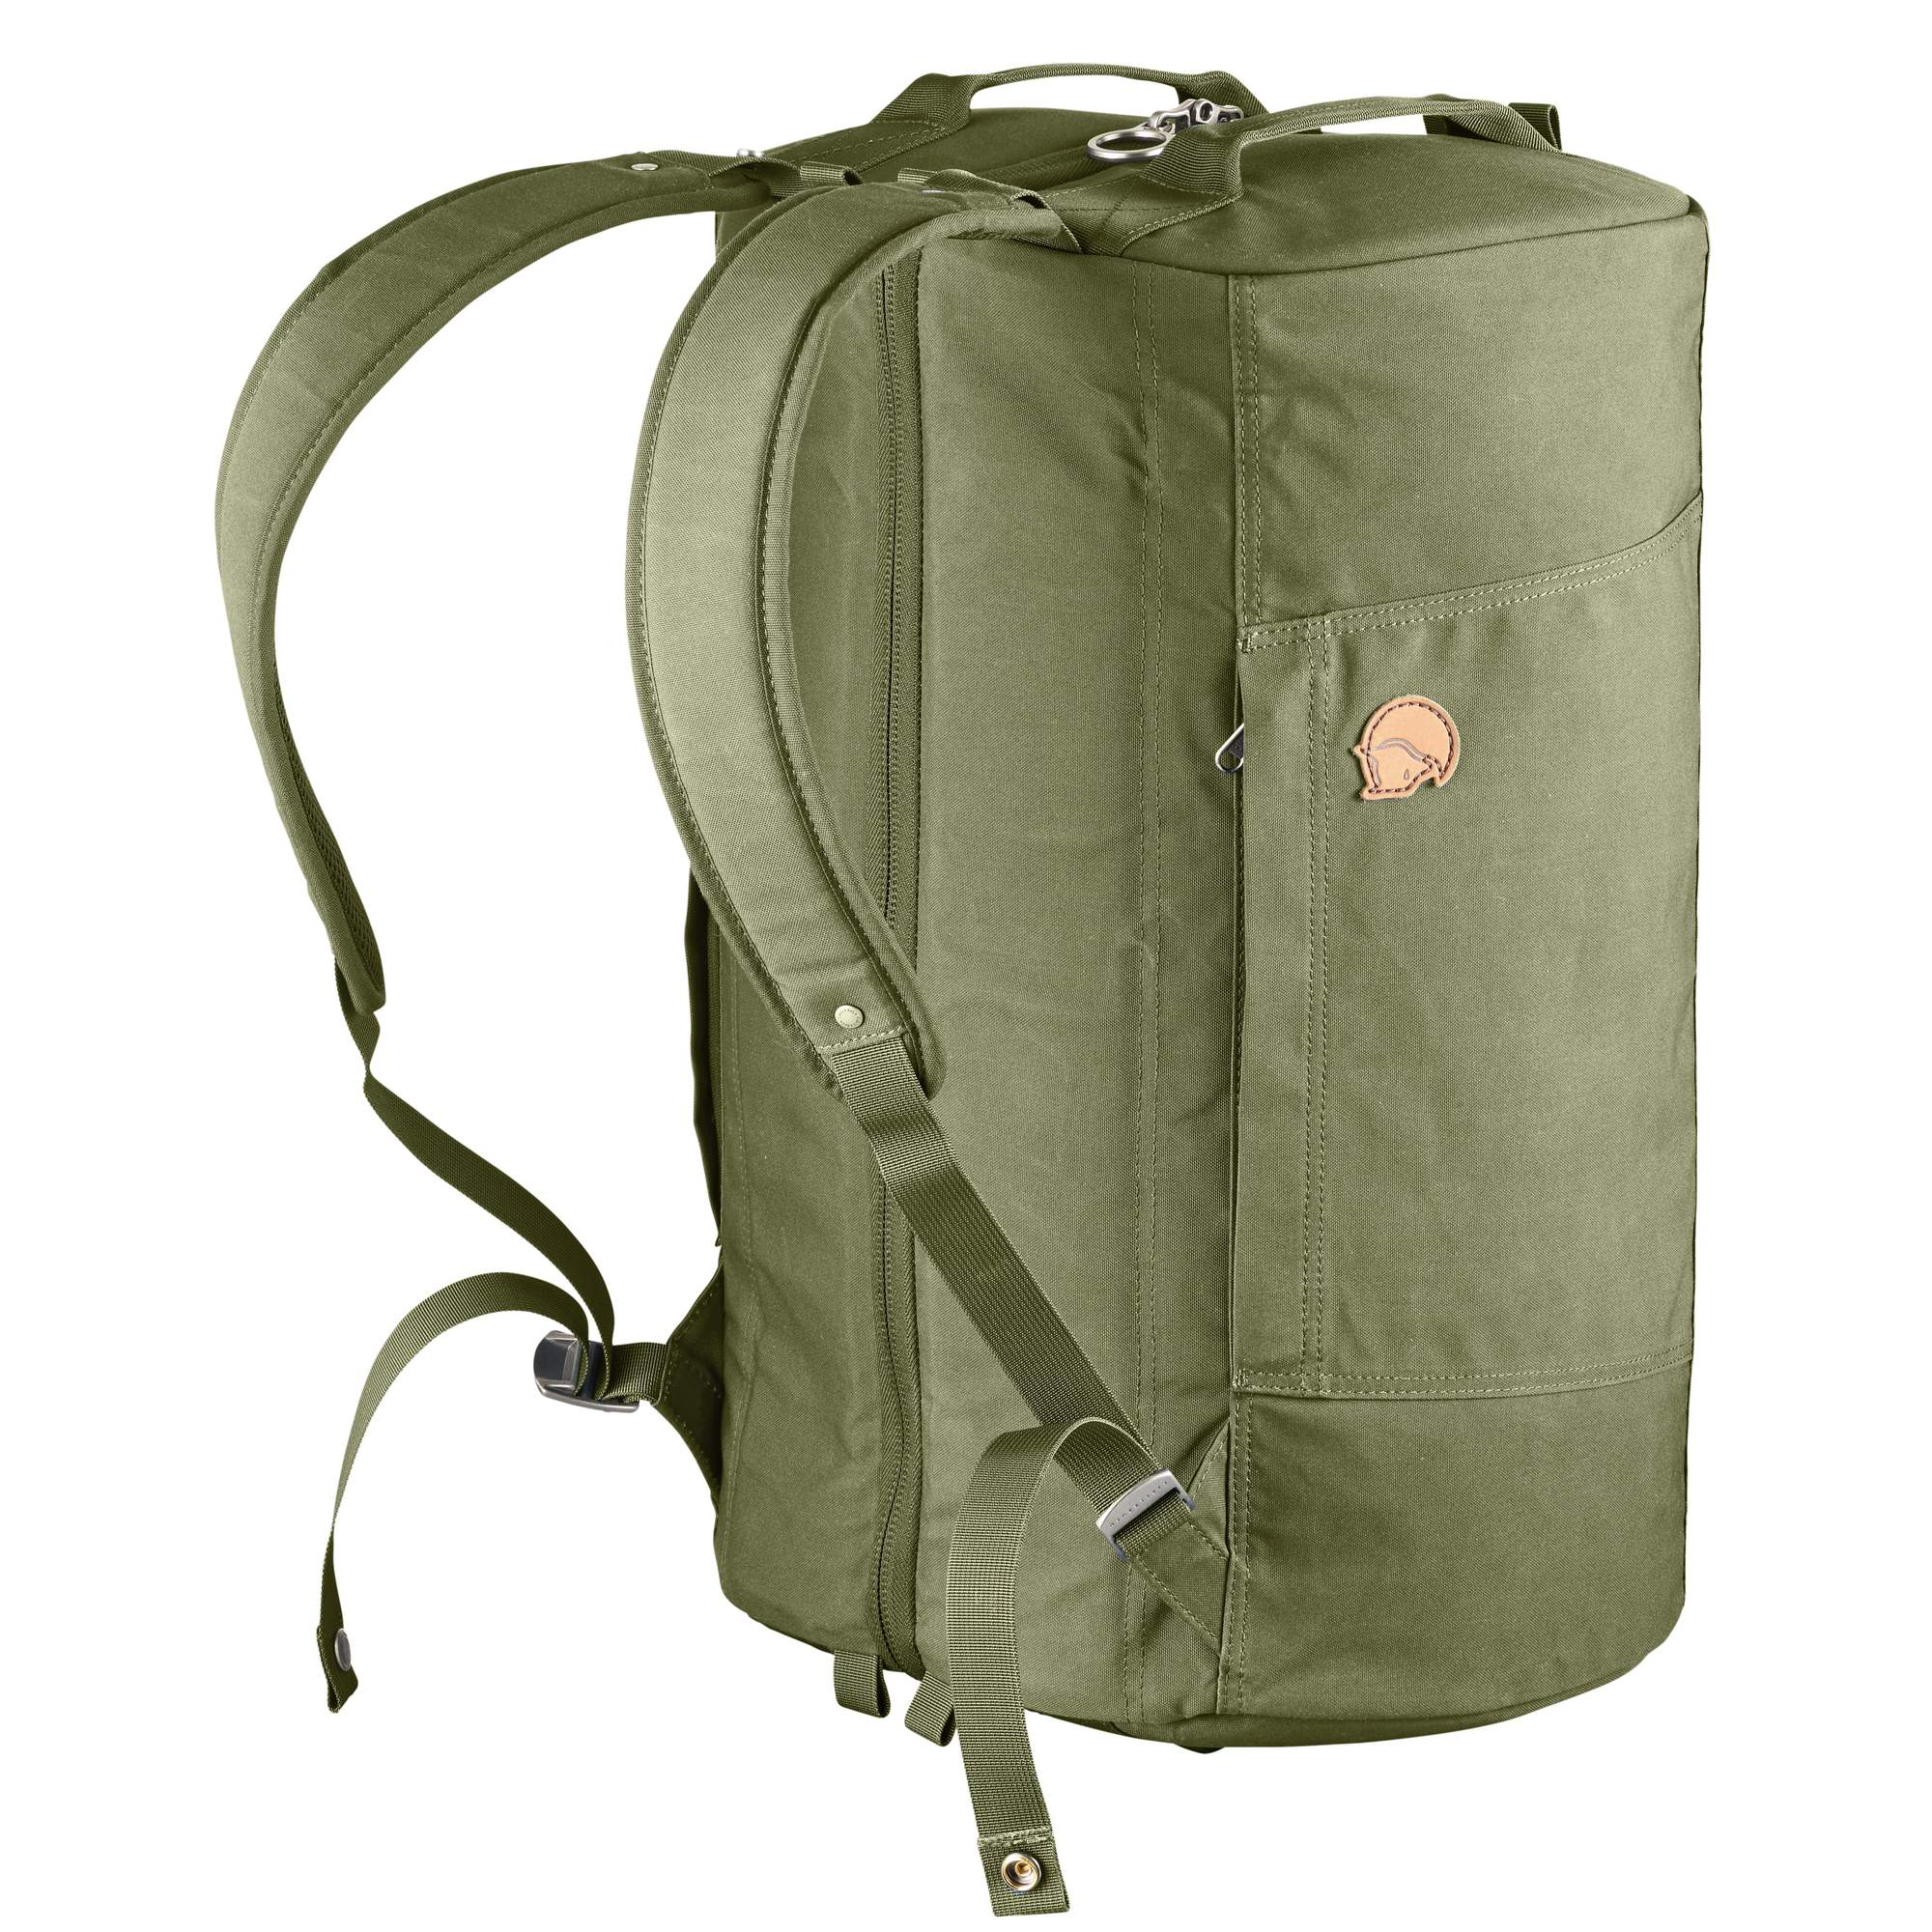 Fjallraven 35L Splitpack Bag in Green